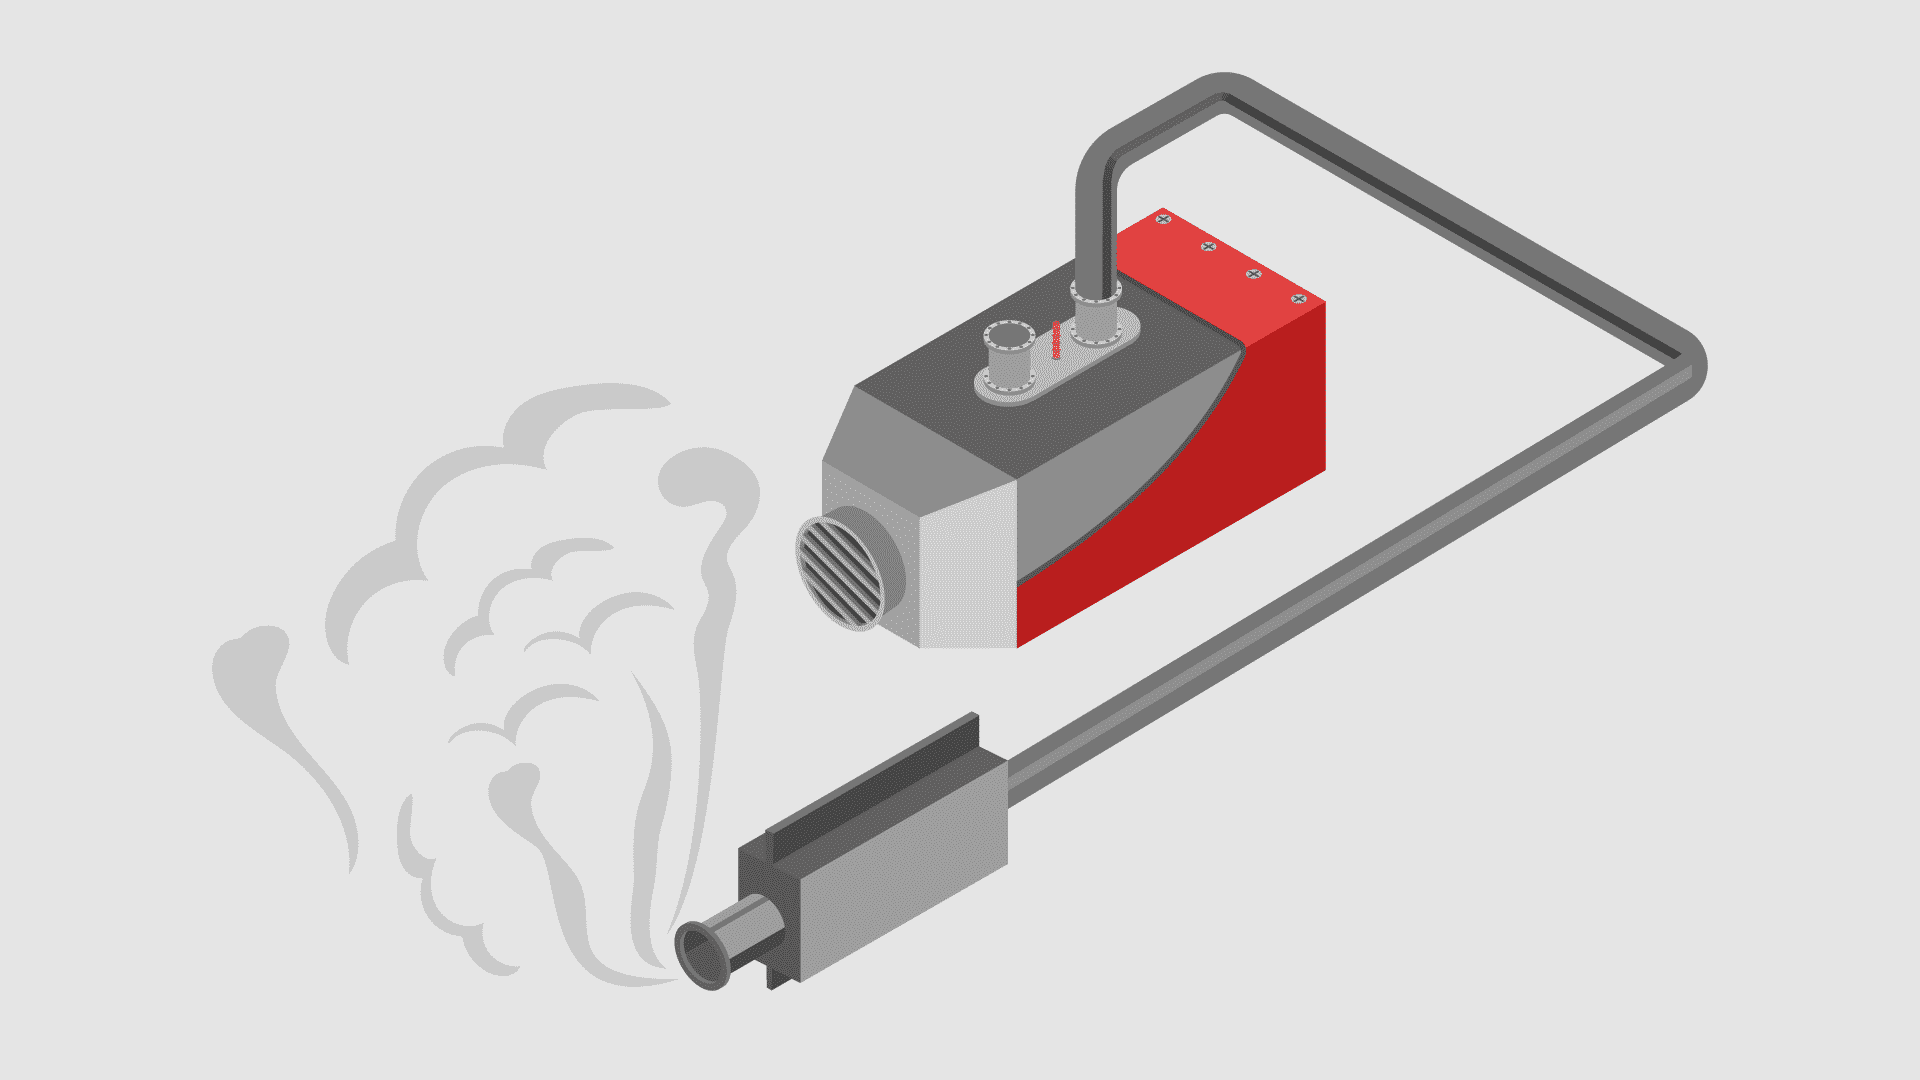 a diesel night heater with its exhaust system running emmiting smoke